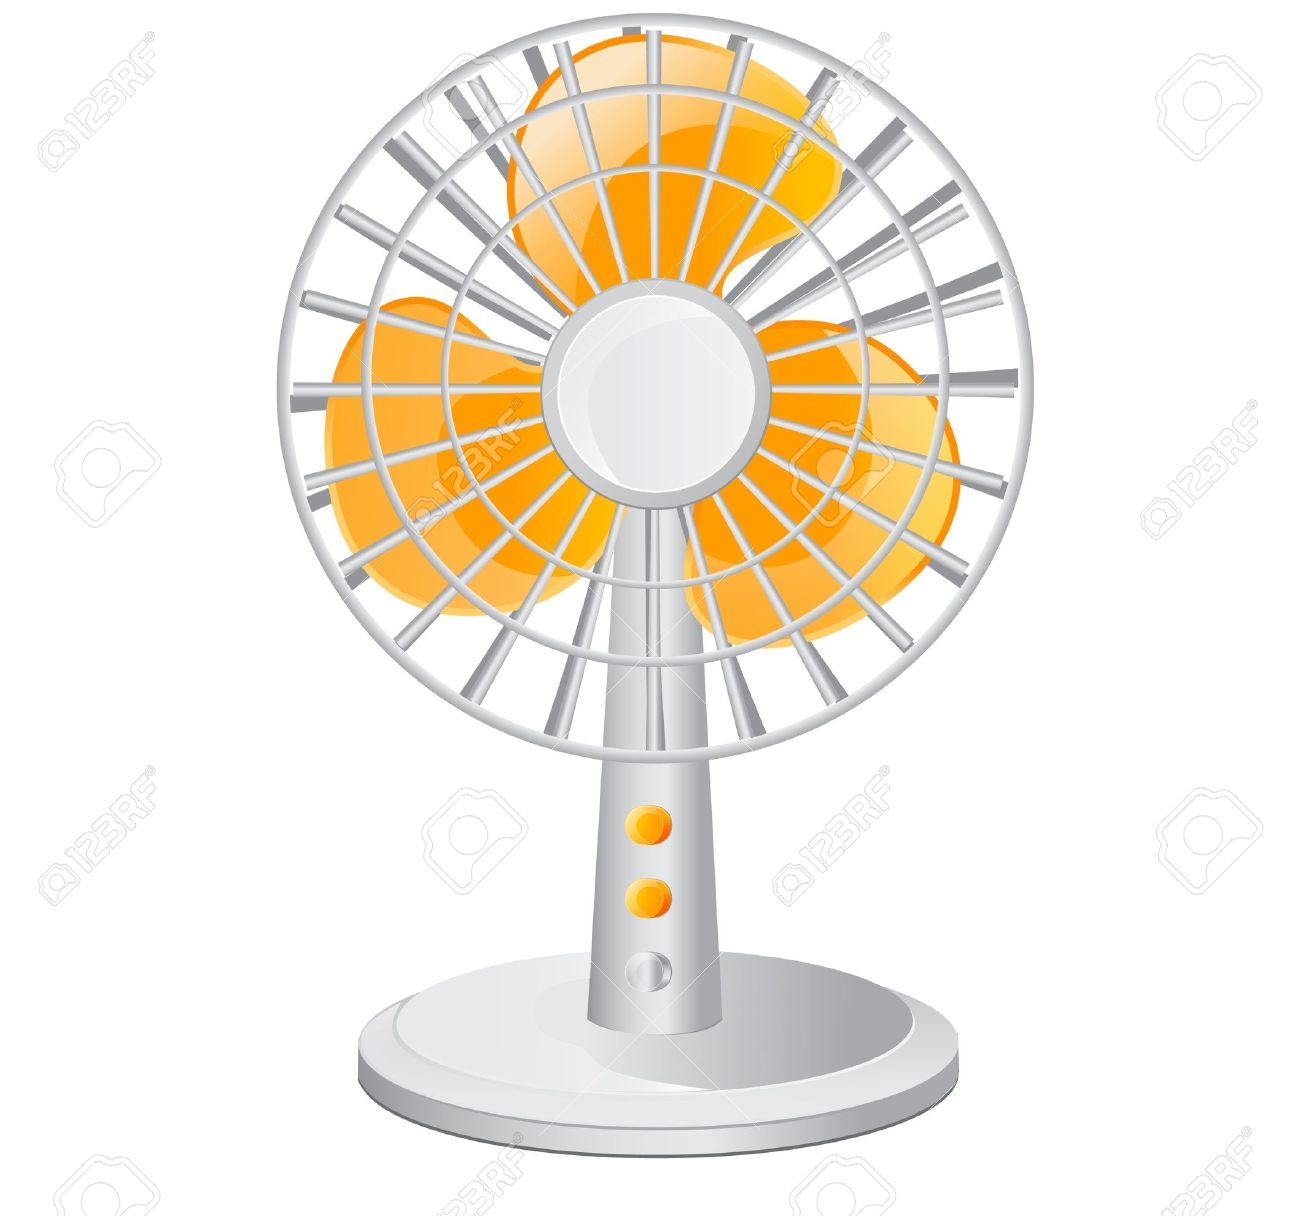 Electric table fan Stock Vector - 14722079